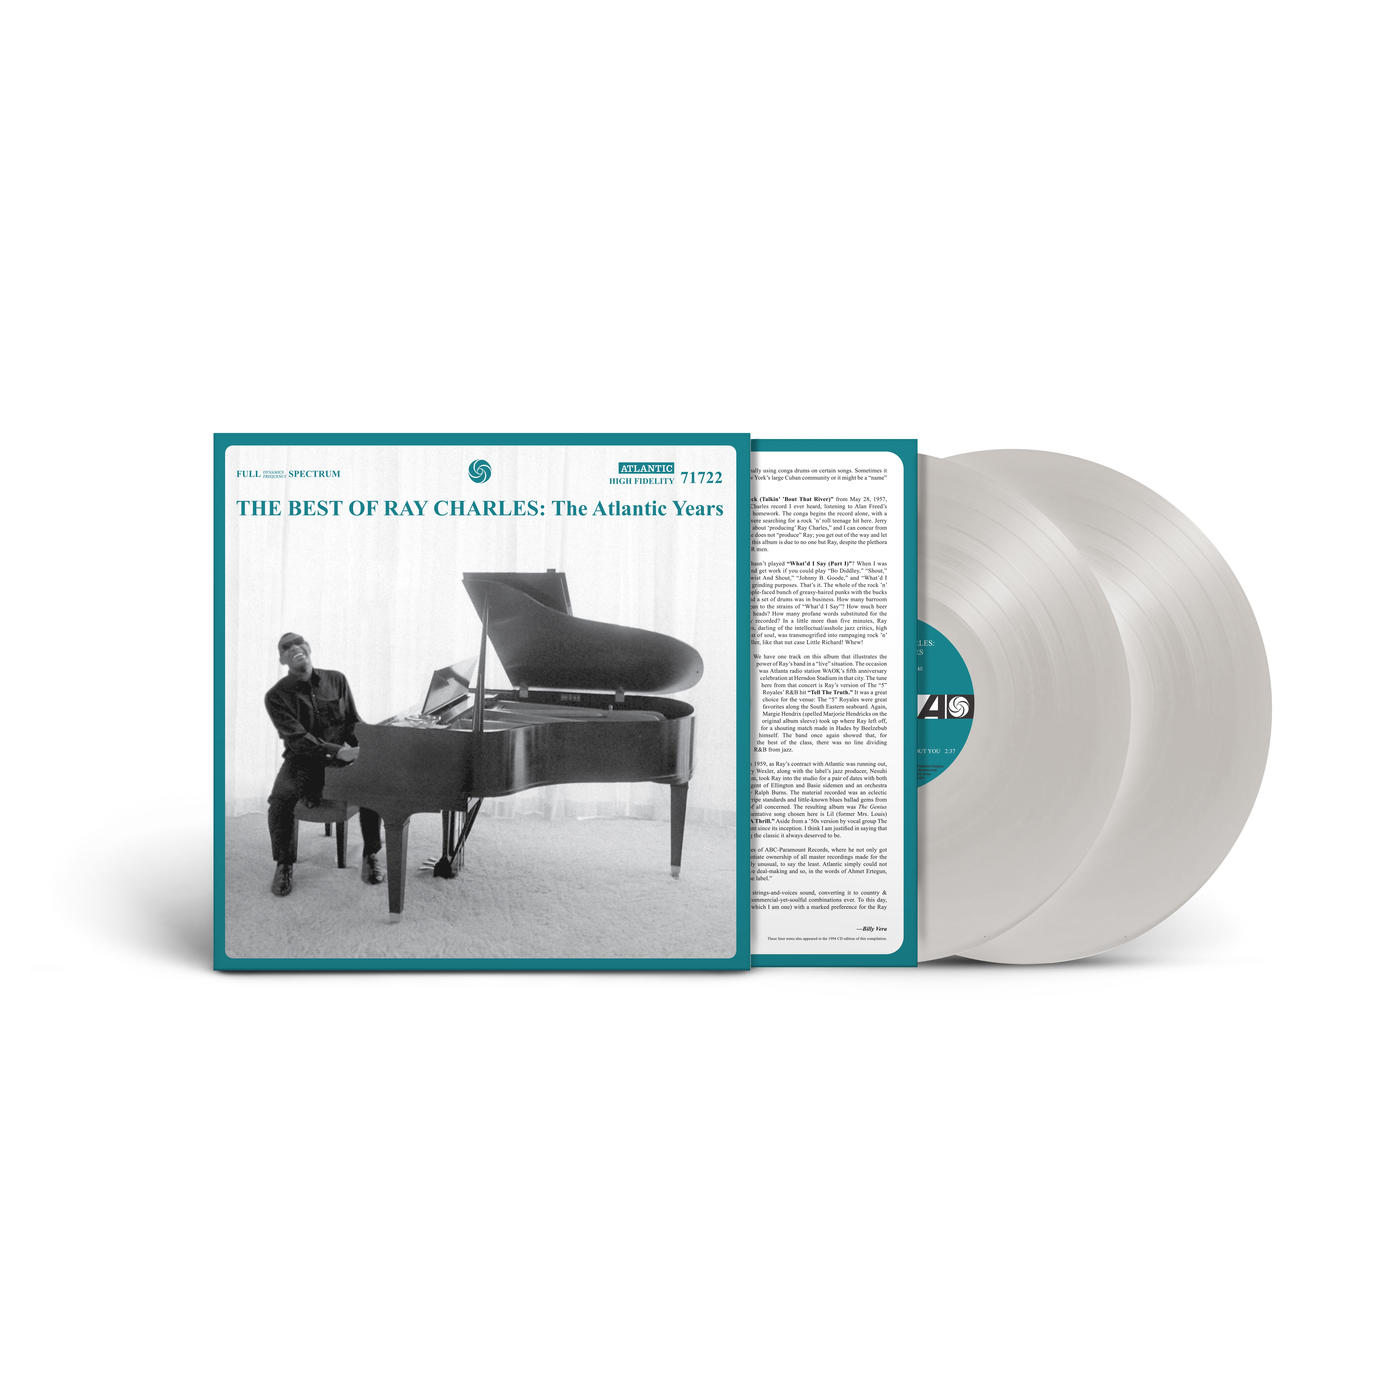 Ray Charles - Vinyl The Best of Ray Charles: The Atlantic Years